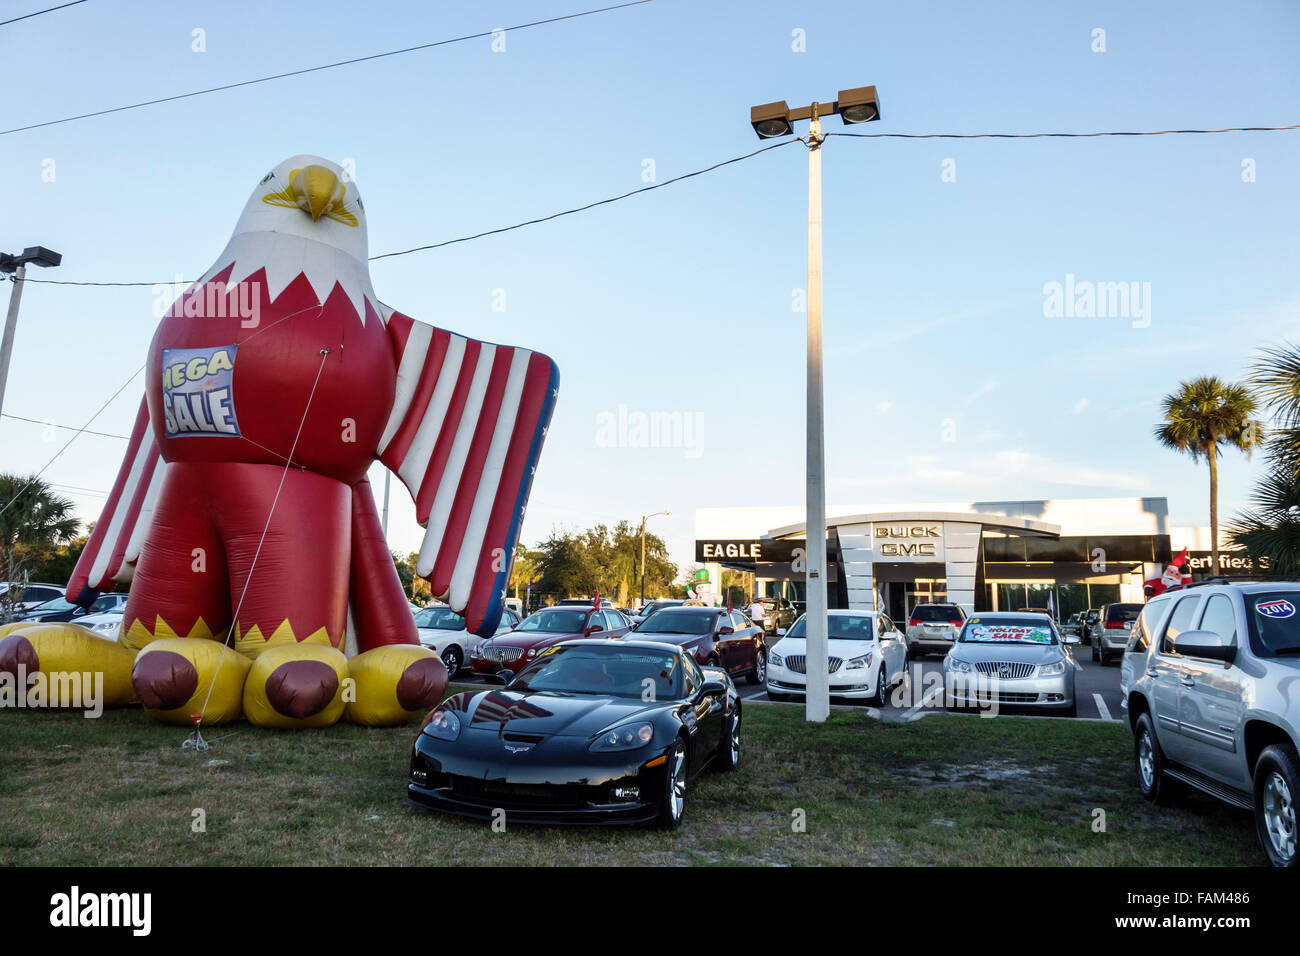 Florida Crystal River GMC dealership cars automobiles giant eagle inflatable - Stock Image